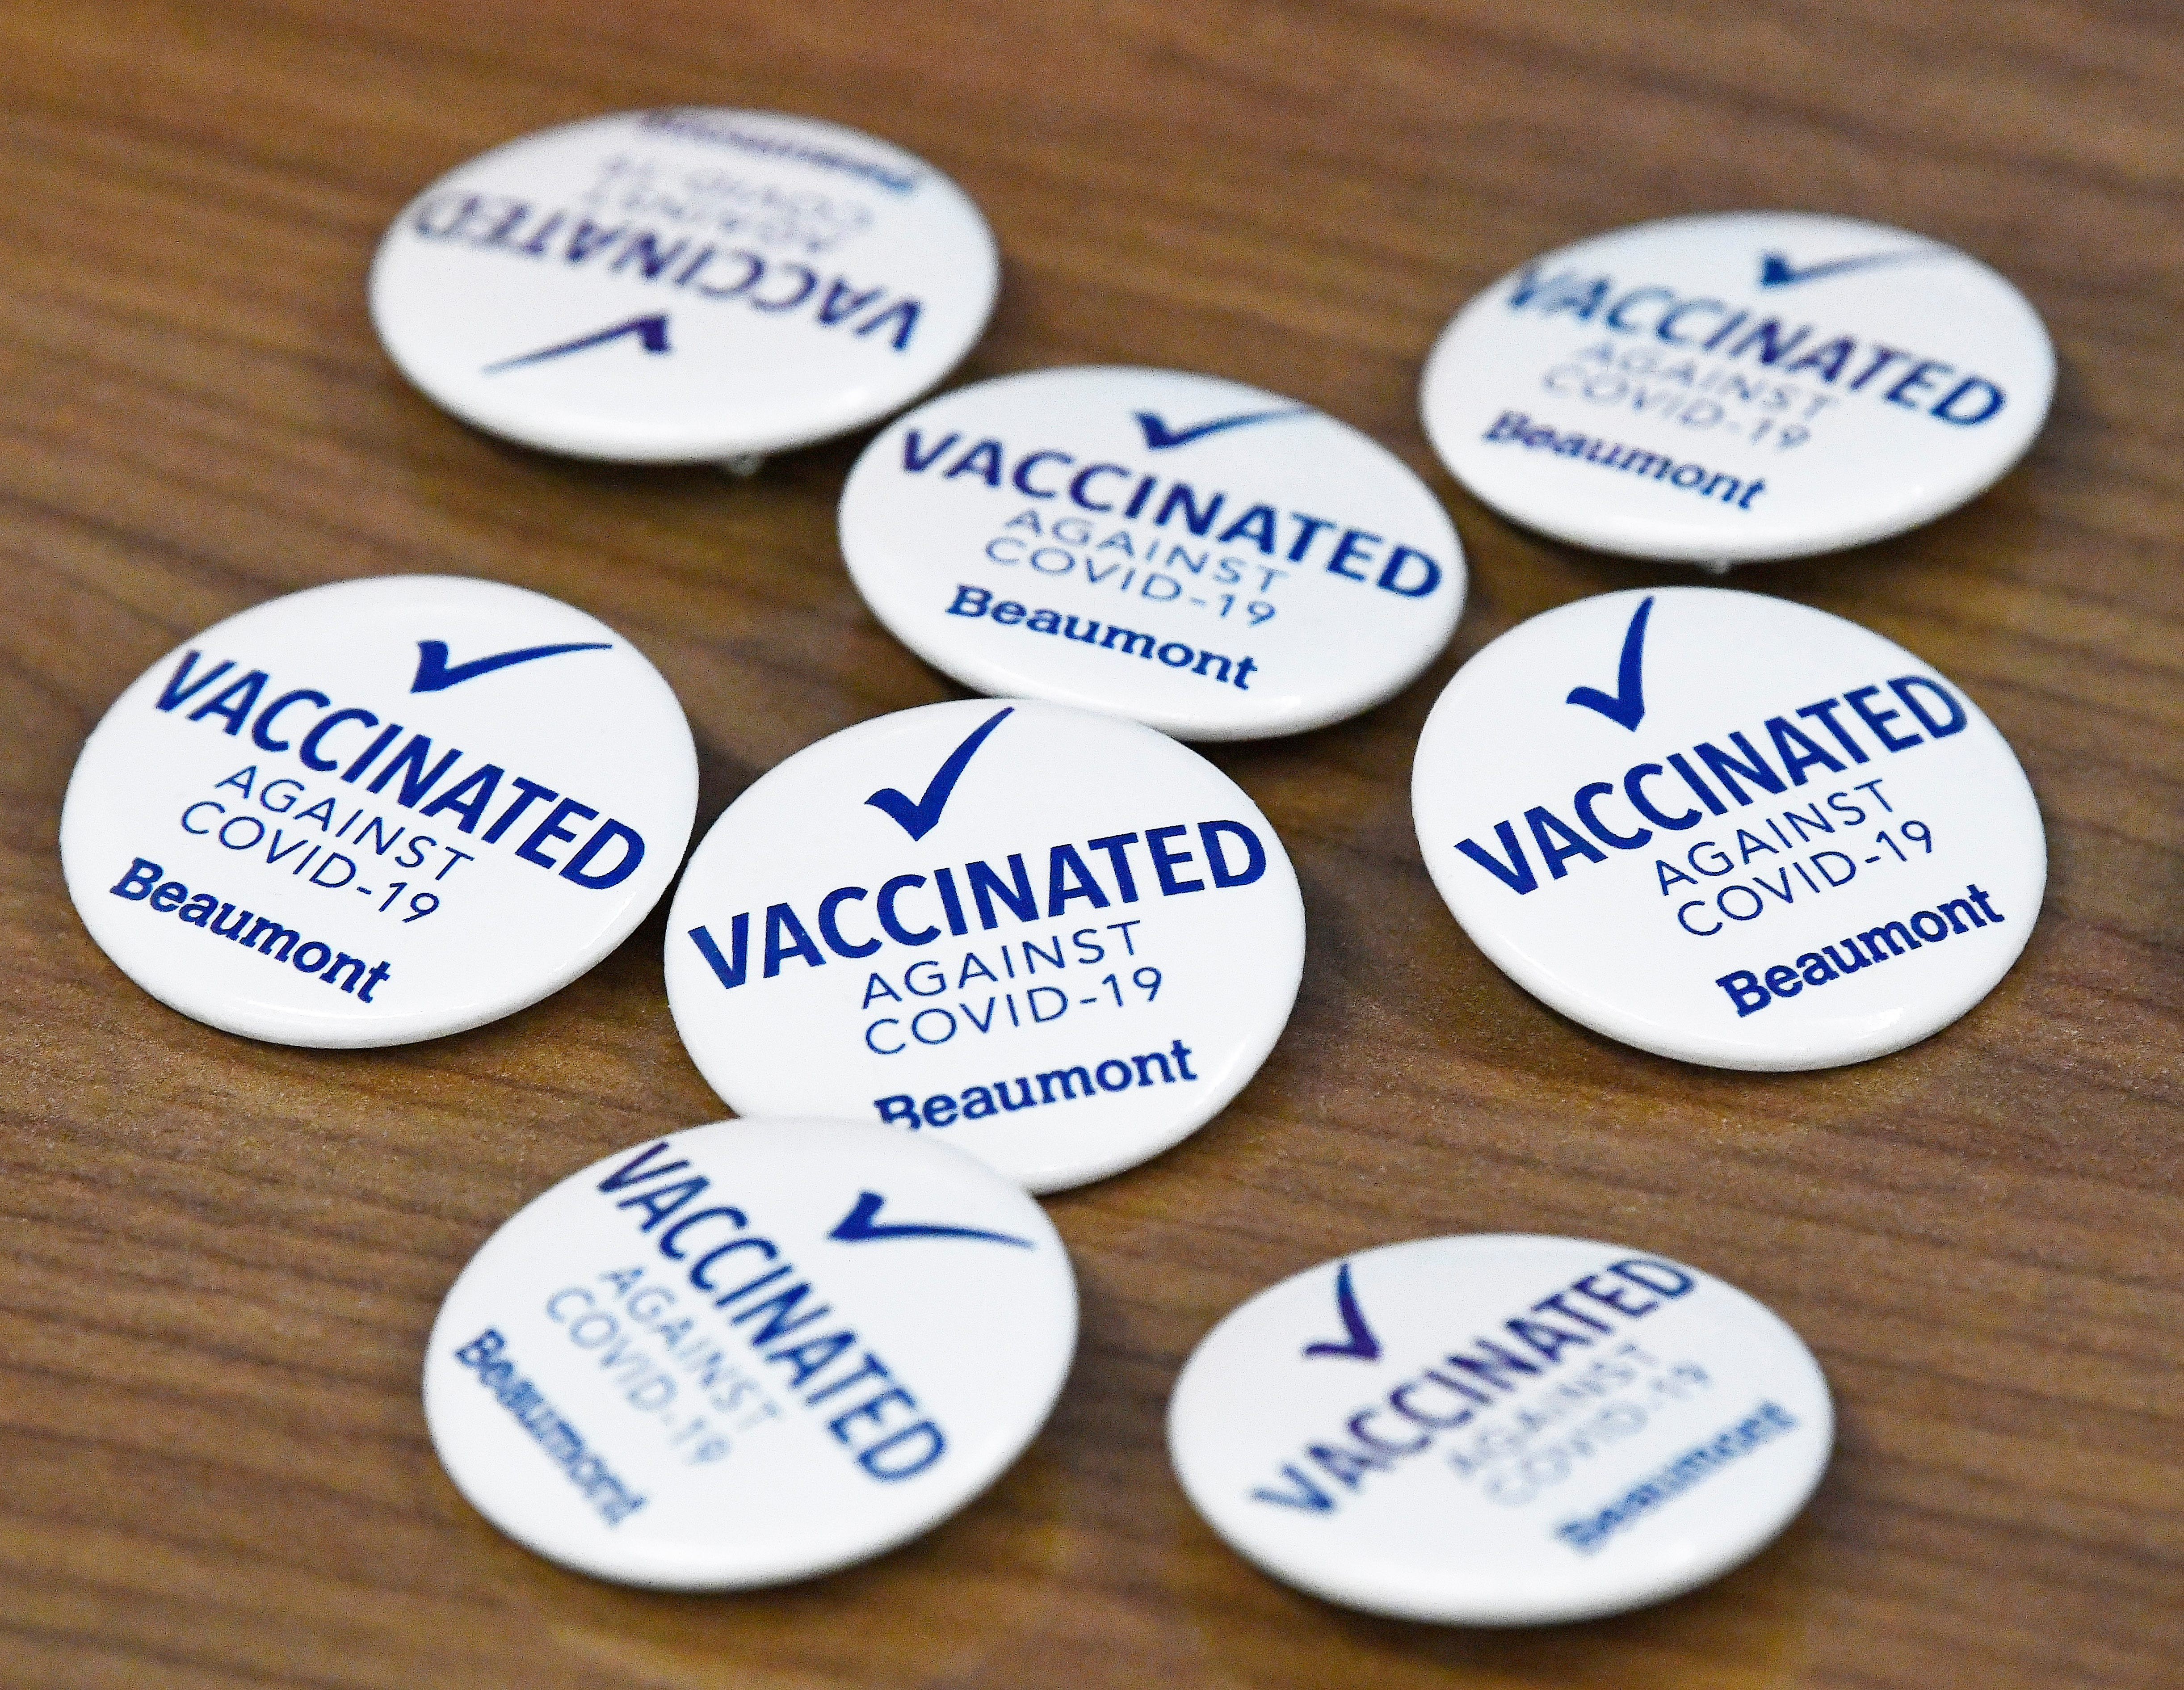 I Won My Fight Against Covid Button Covid Vaccinated Pin Button Vaccinated Pin Covid Vaccine Pin Covid vaccination Pin Vaccinate Pin